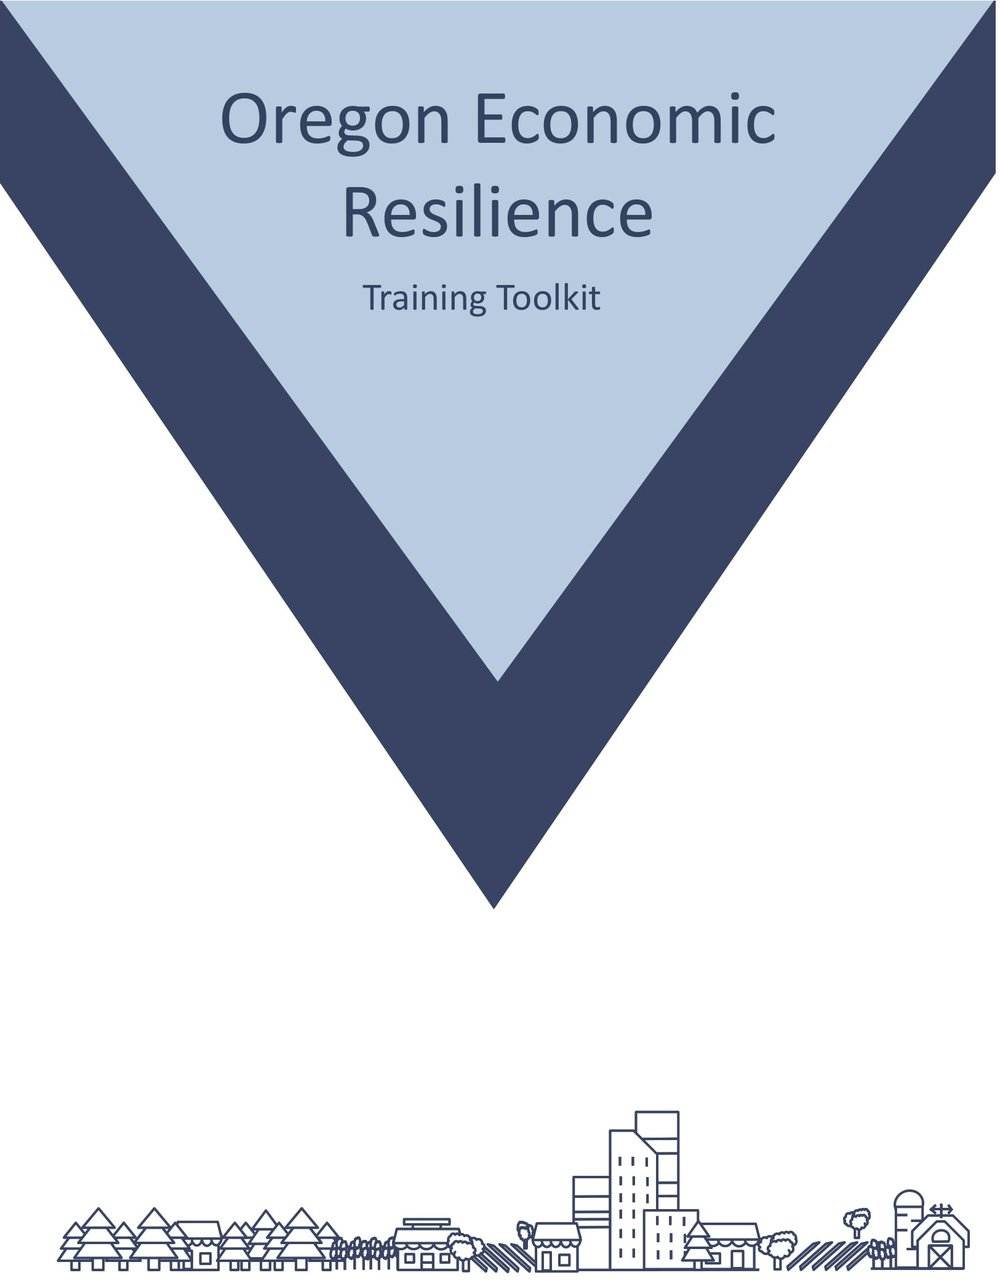 Cover for the Oregon Economic Resilience training toolkit, a draft deliverable incorporating a one-year project assessing statewide economic resilience. The project used the 2017 eclipse as a proxy event to determine the State's readiness for an economic shock or stressor.